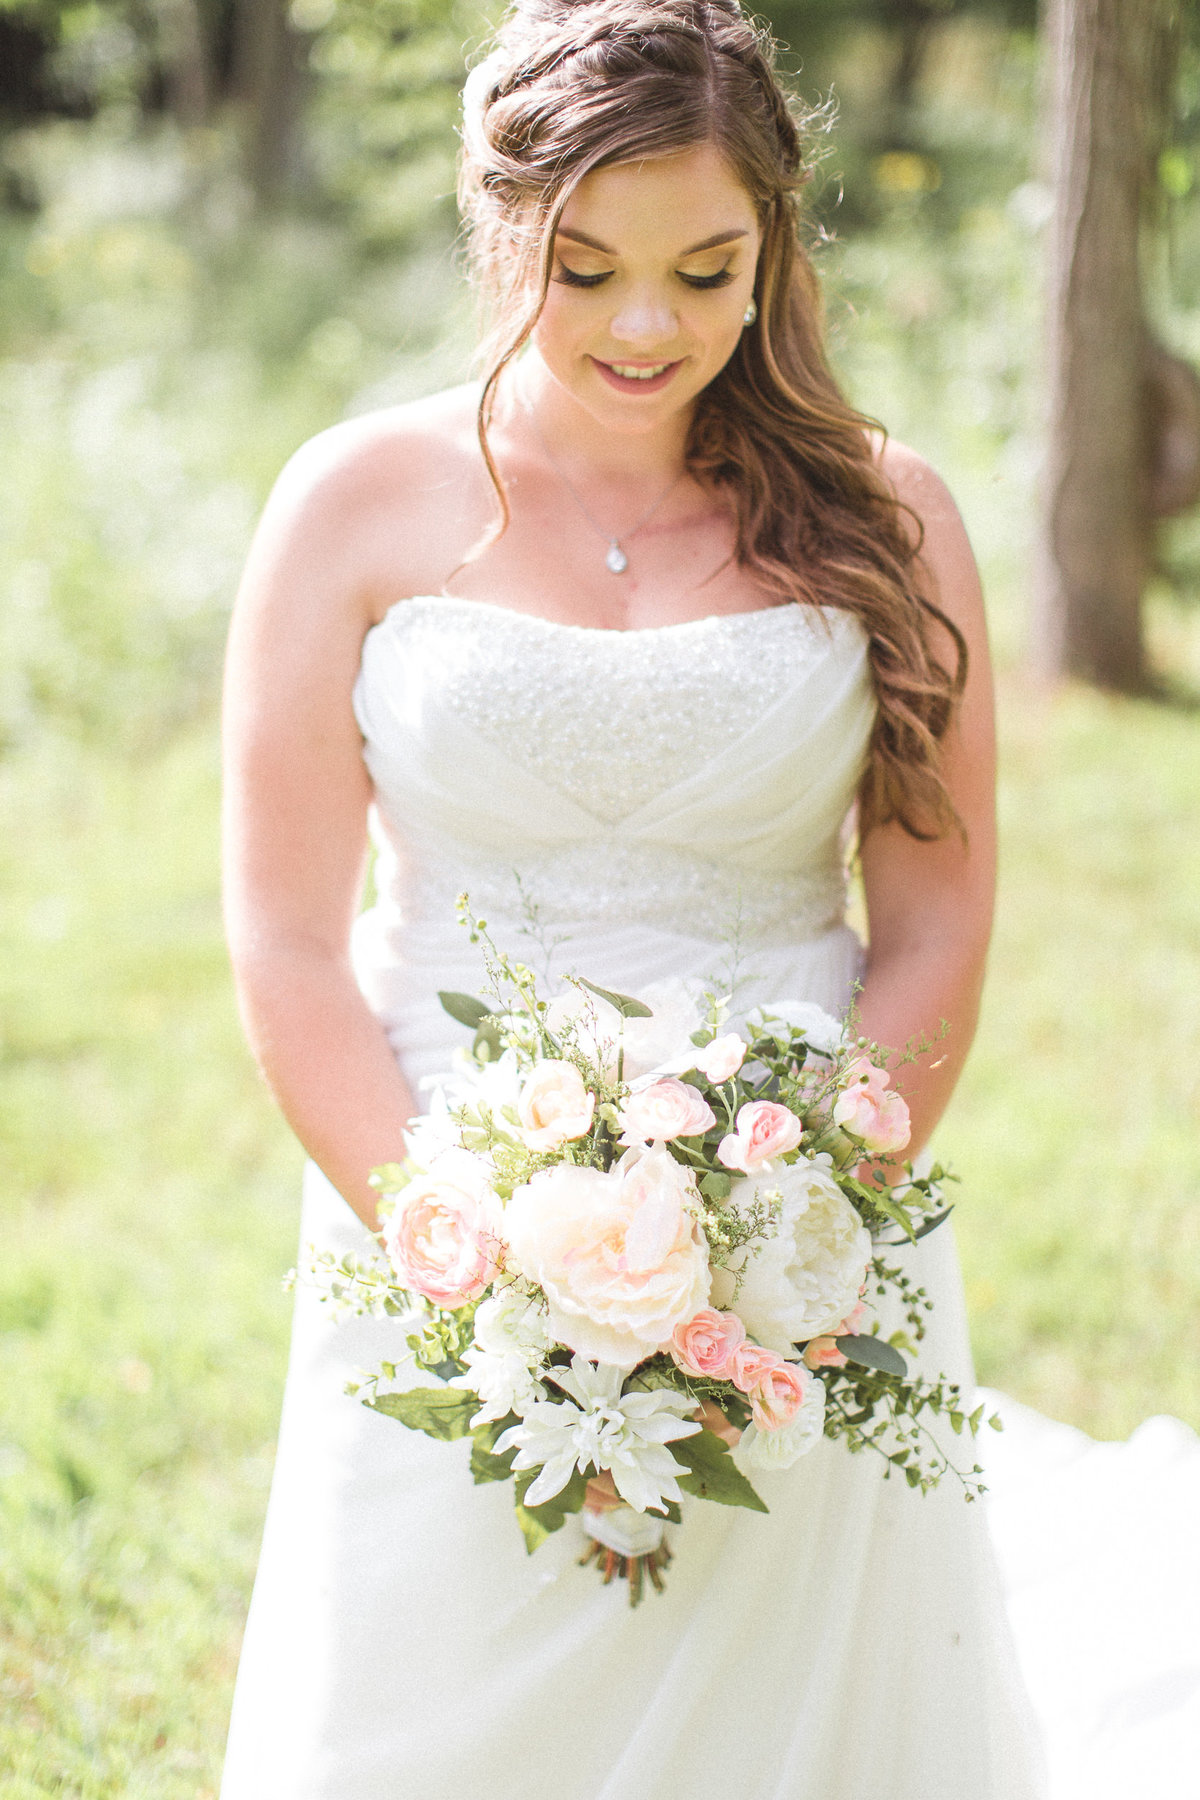 Columbus Wedding Photograpy - Zach + Faith - DiBlasio Photo-5439